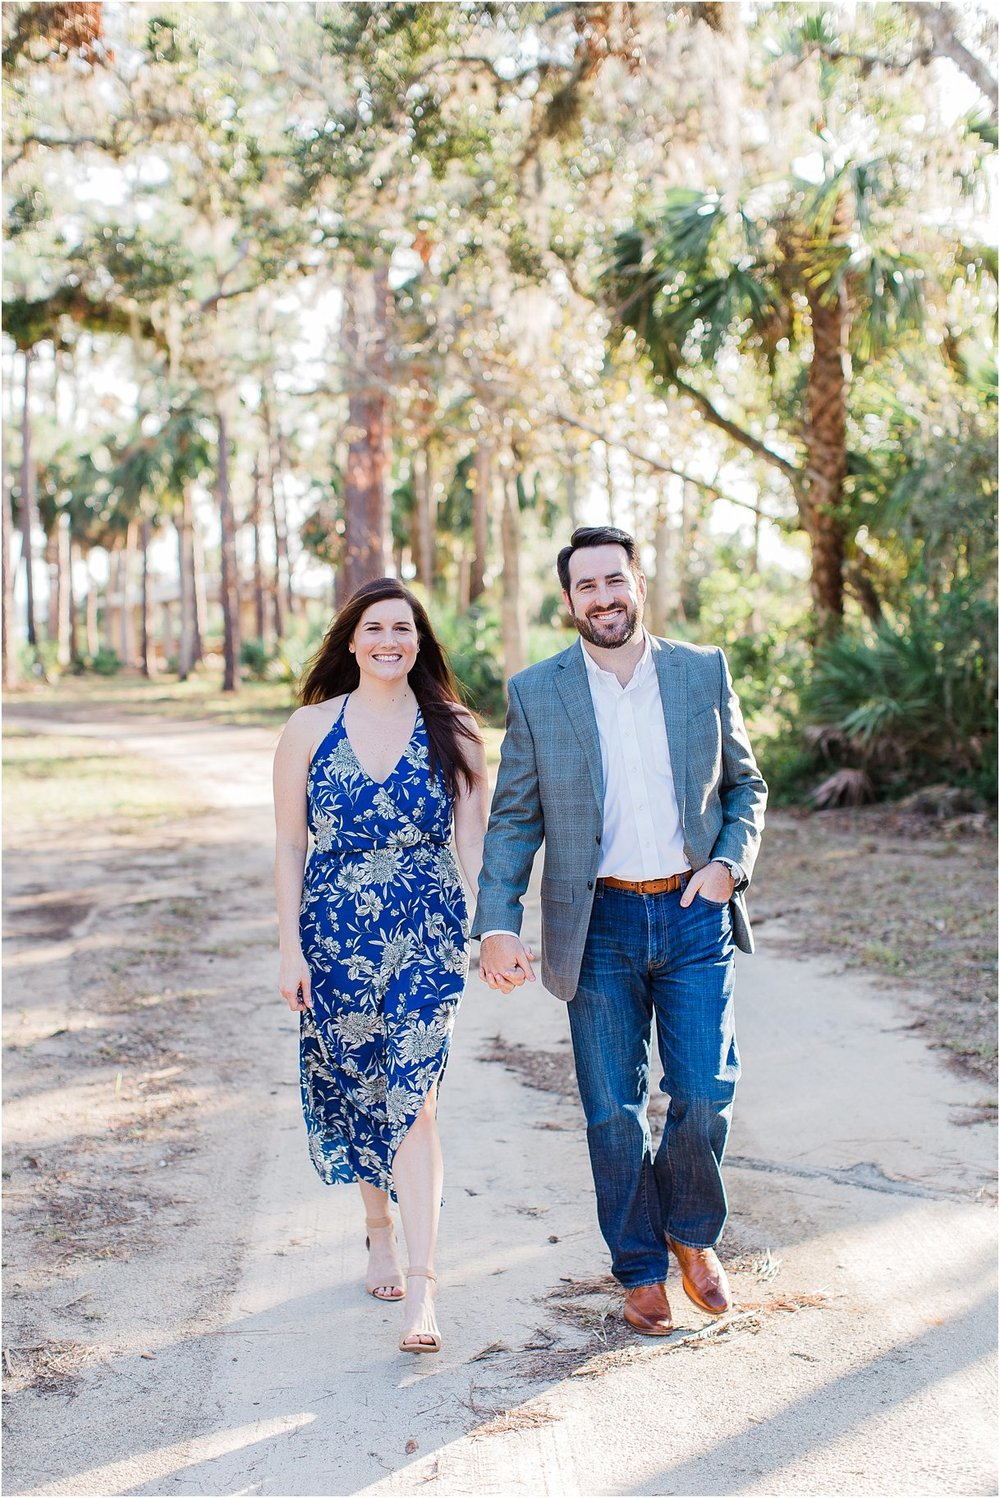 Tomoka Park Ormond Beach Florida Engagement Session Orlando Wedding Photographer PSJ Photography19.jpg